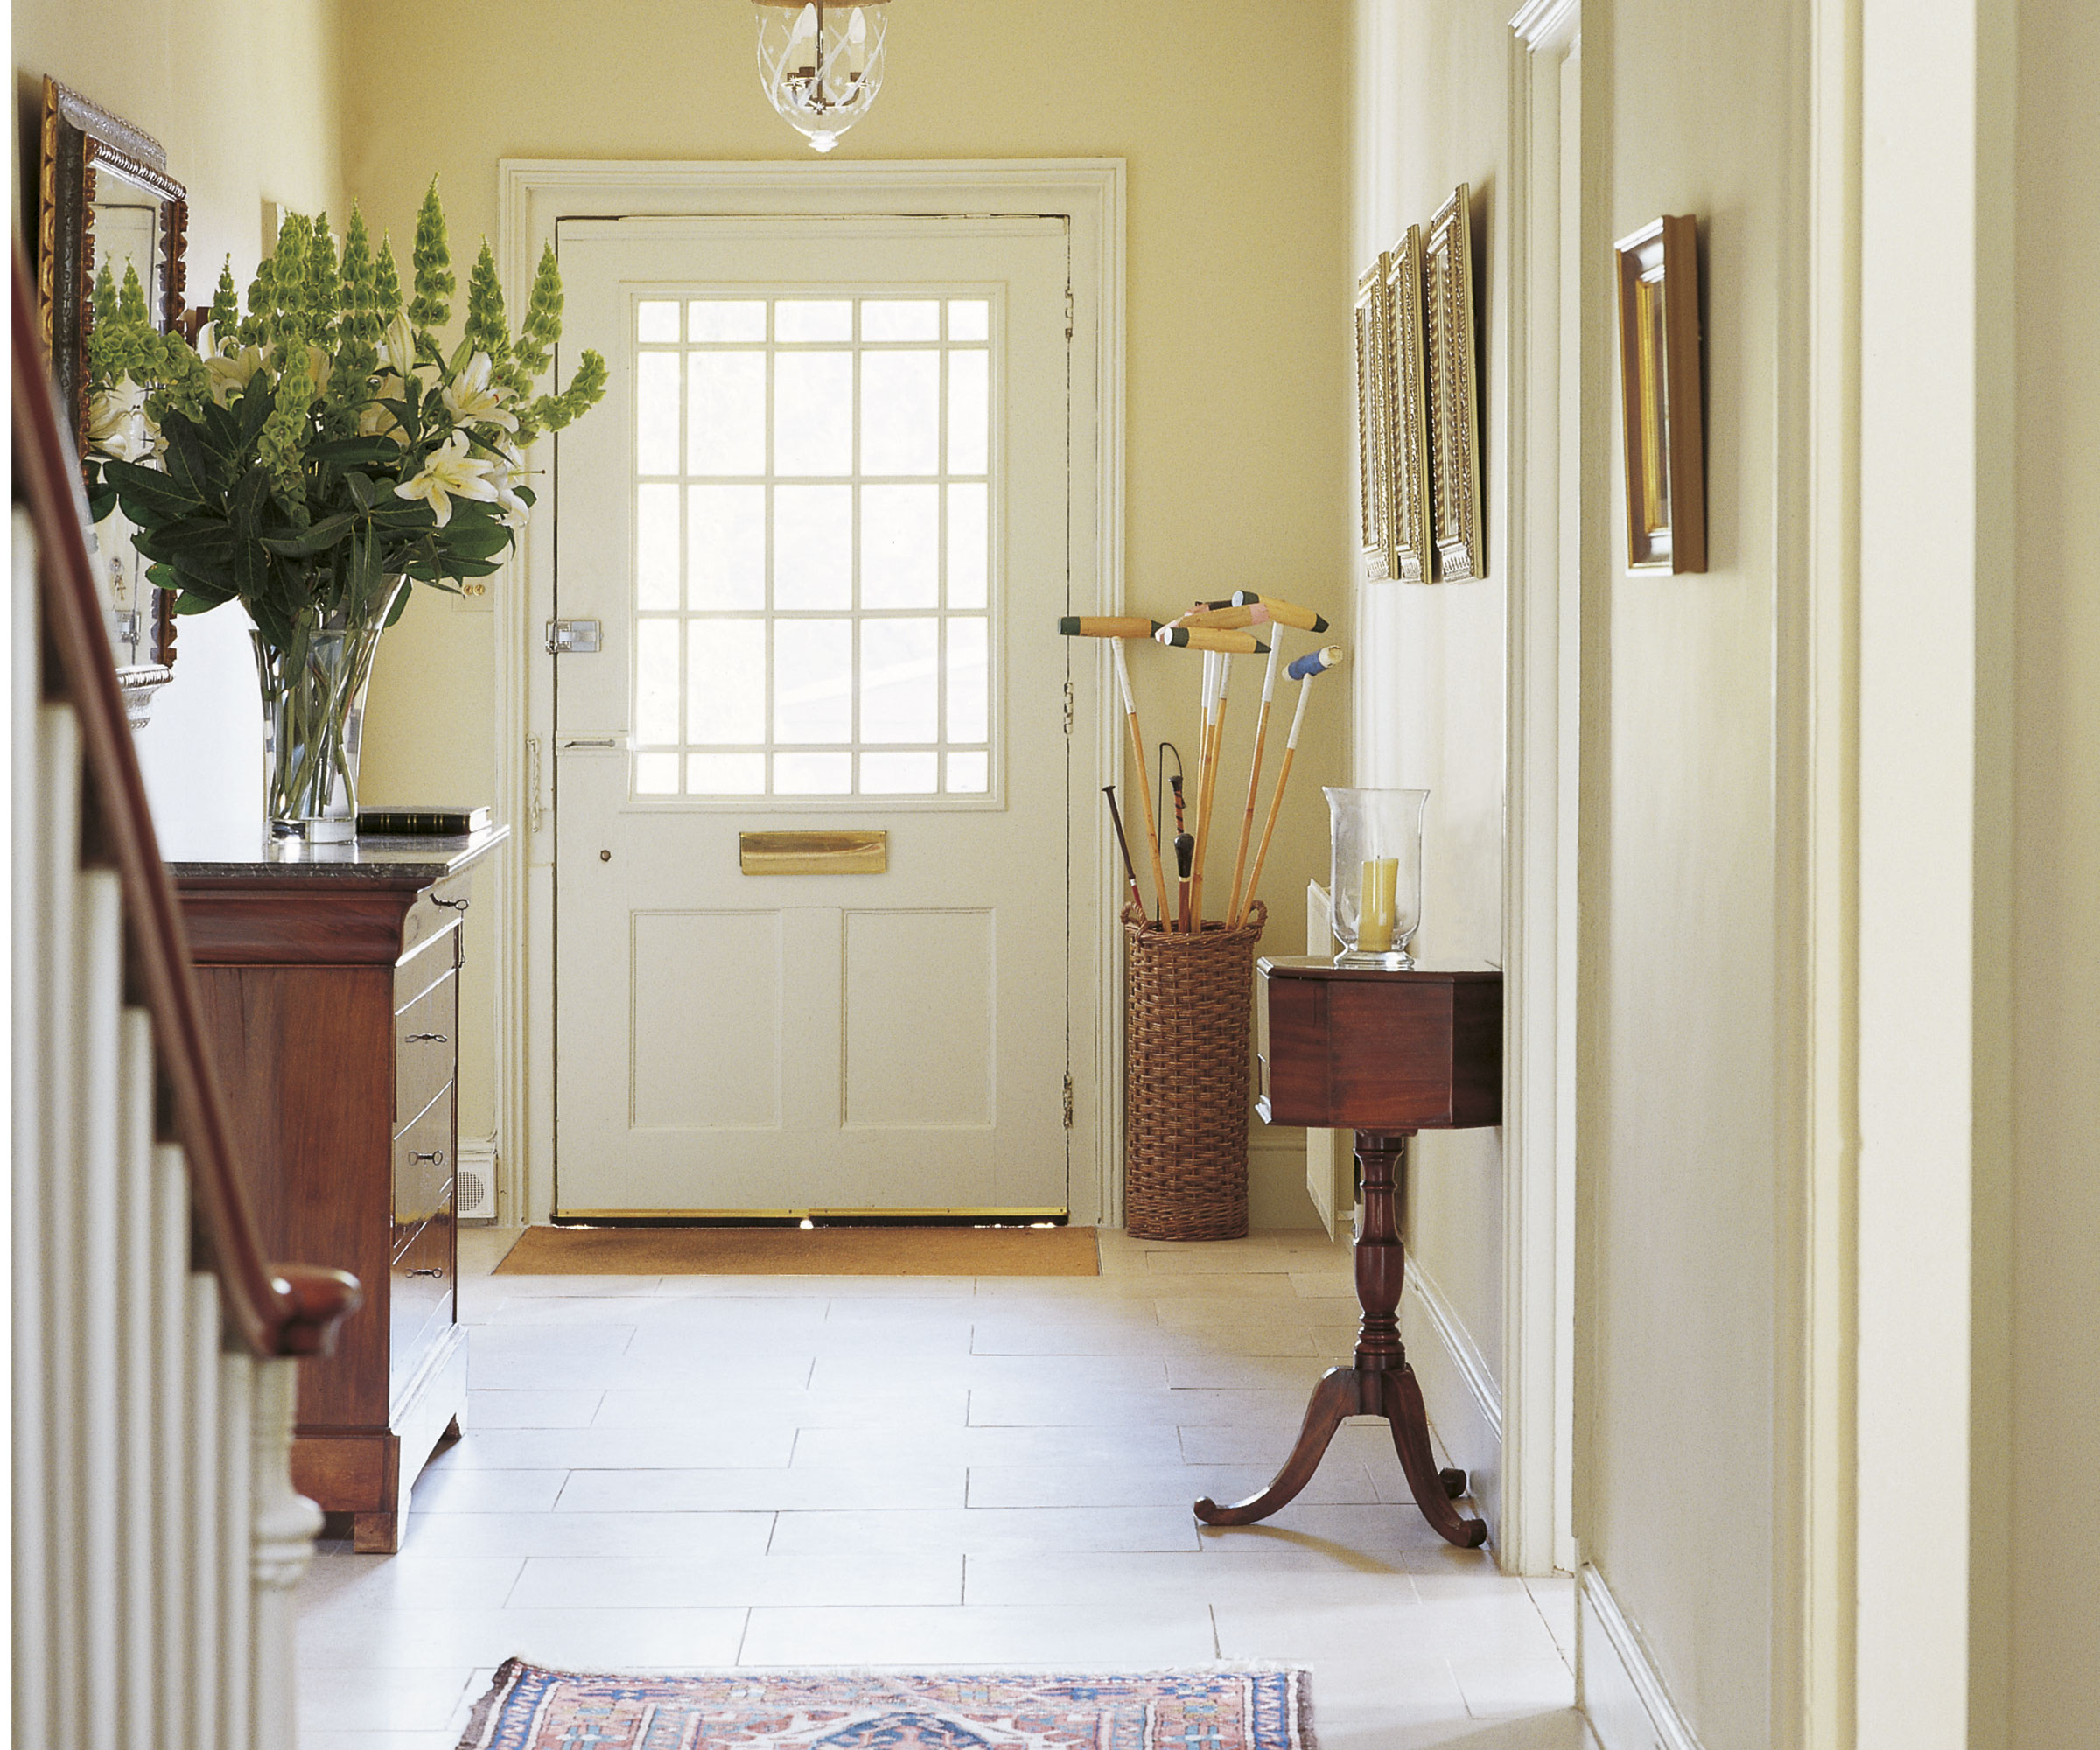 First Impressions 10 Ideas For Entrance Hallway Decor: Hallway Decorating Ideas To Make The Most Of Your Entrance Way